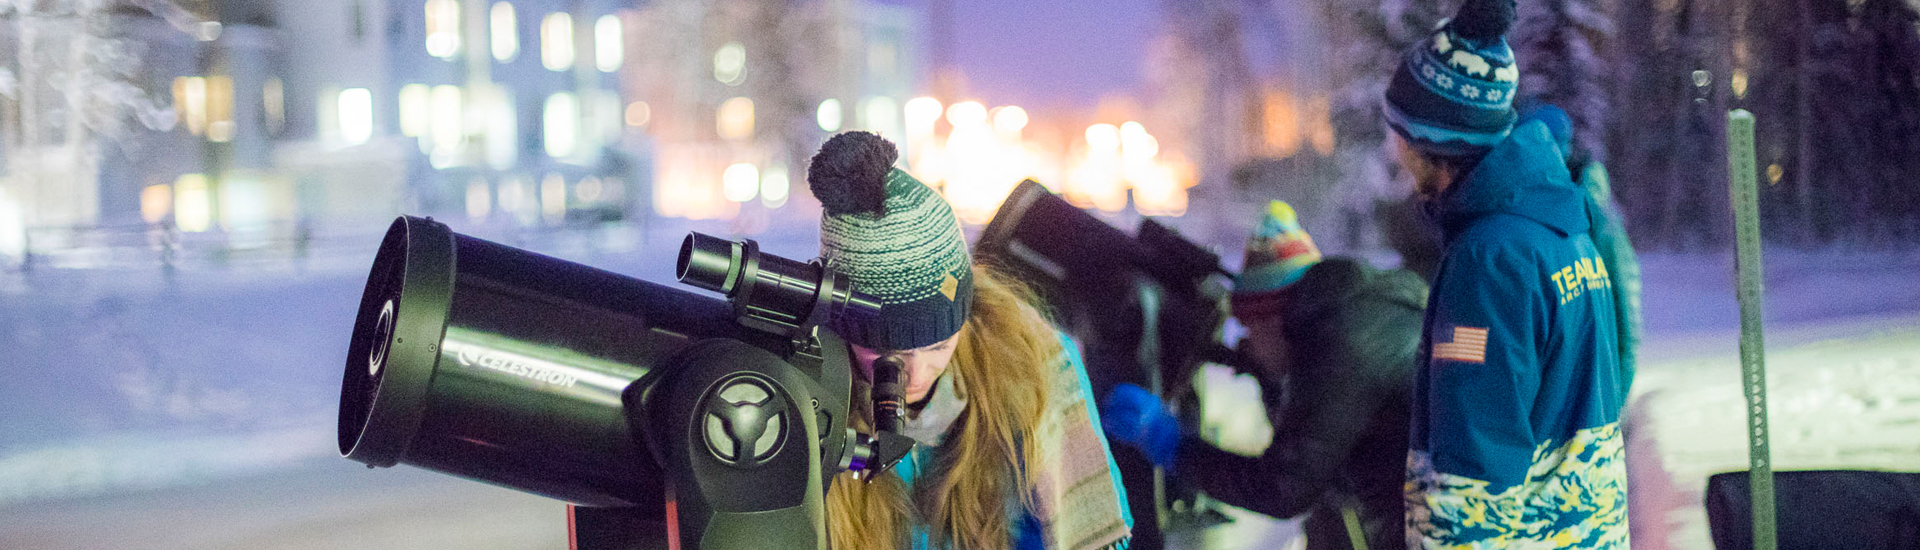 Students with telescopes